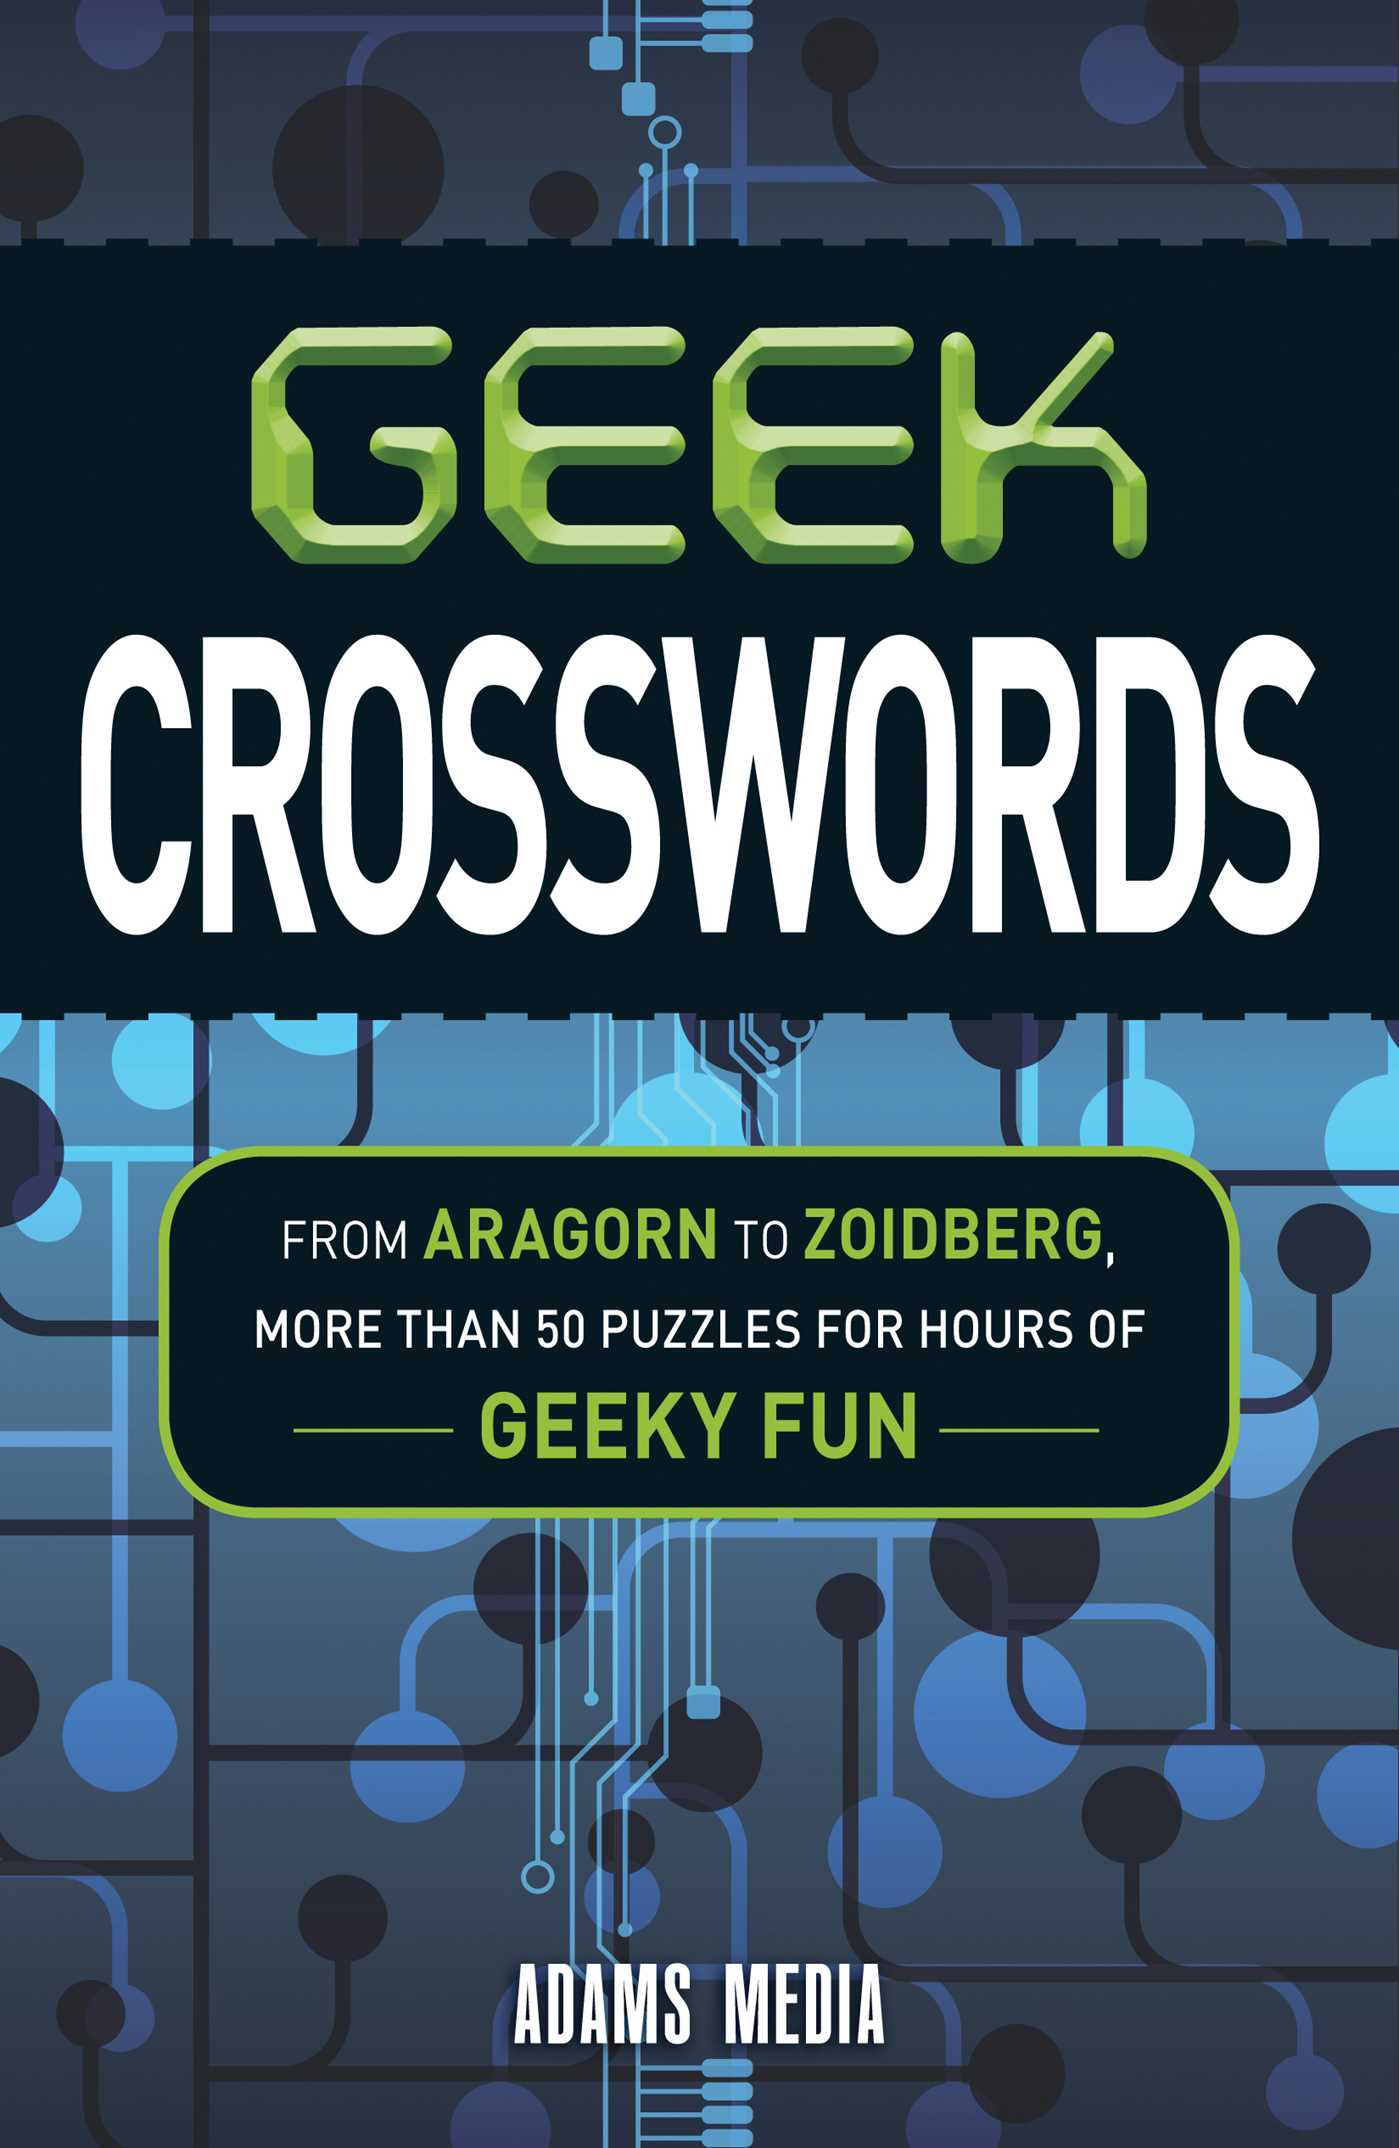 Geek crosswords 9781440560798 hr